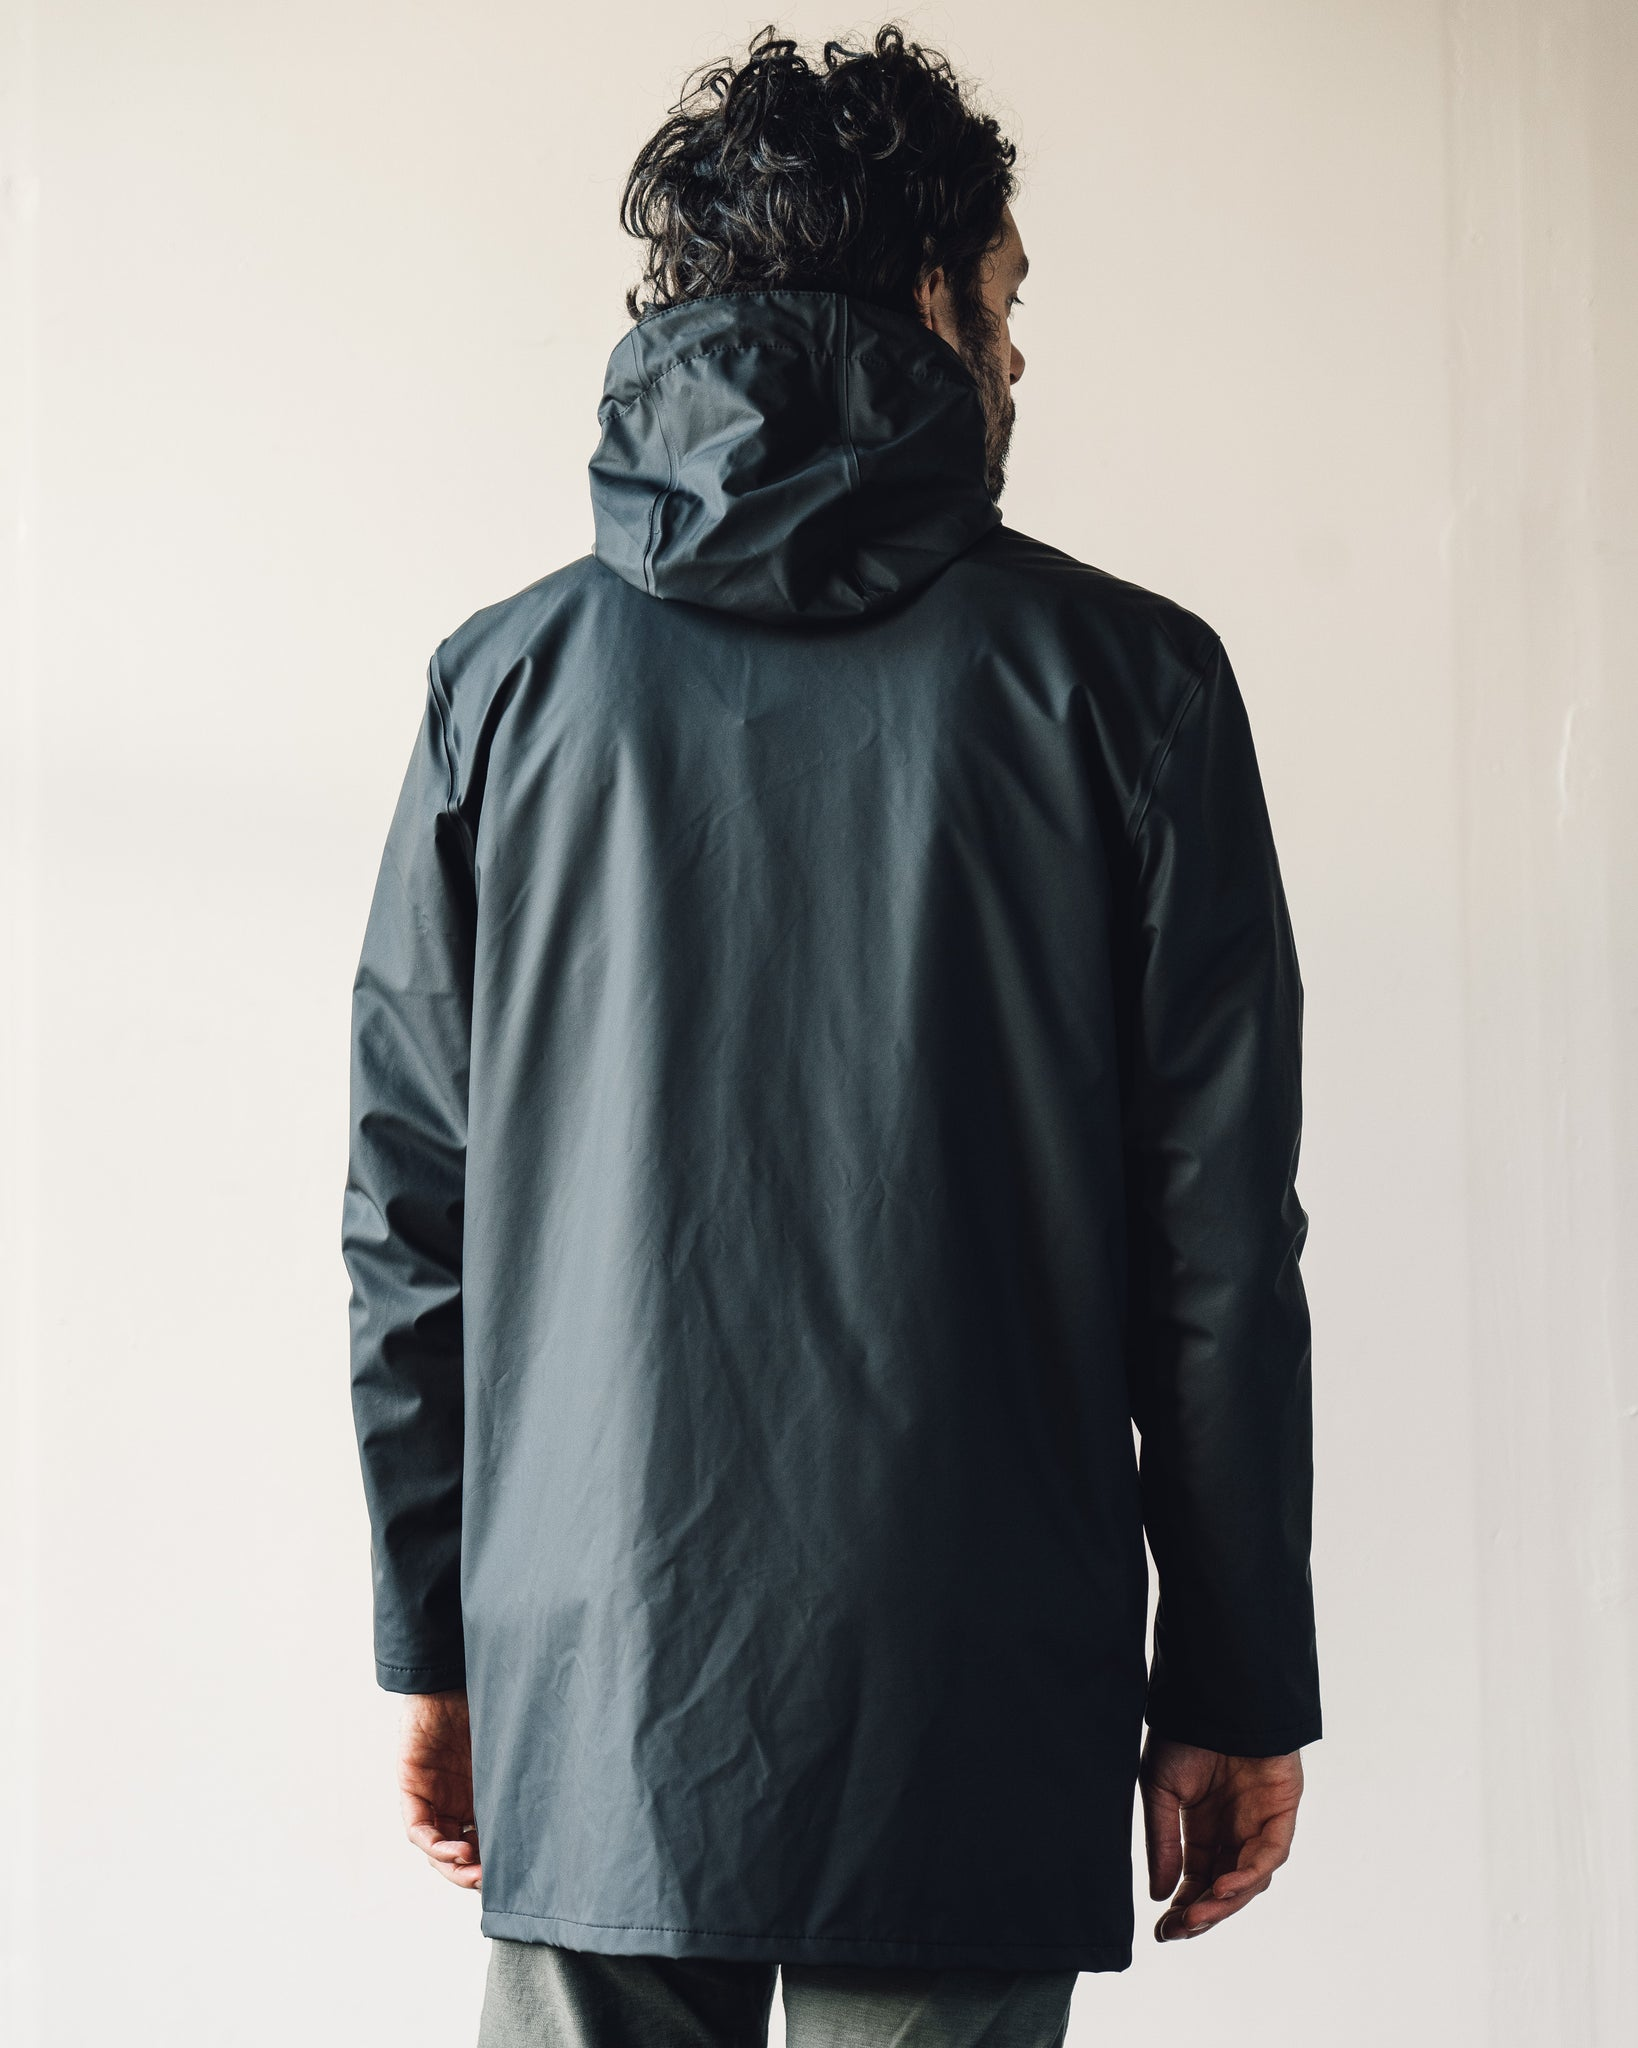 Stutterheim Stockholm Lightweight Raincoat, Black